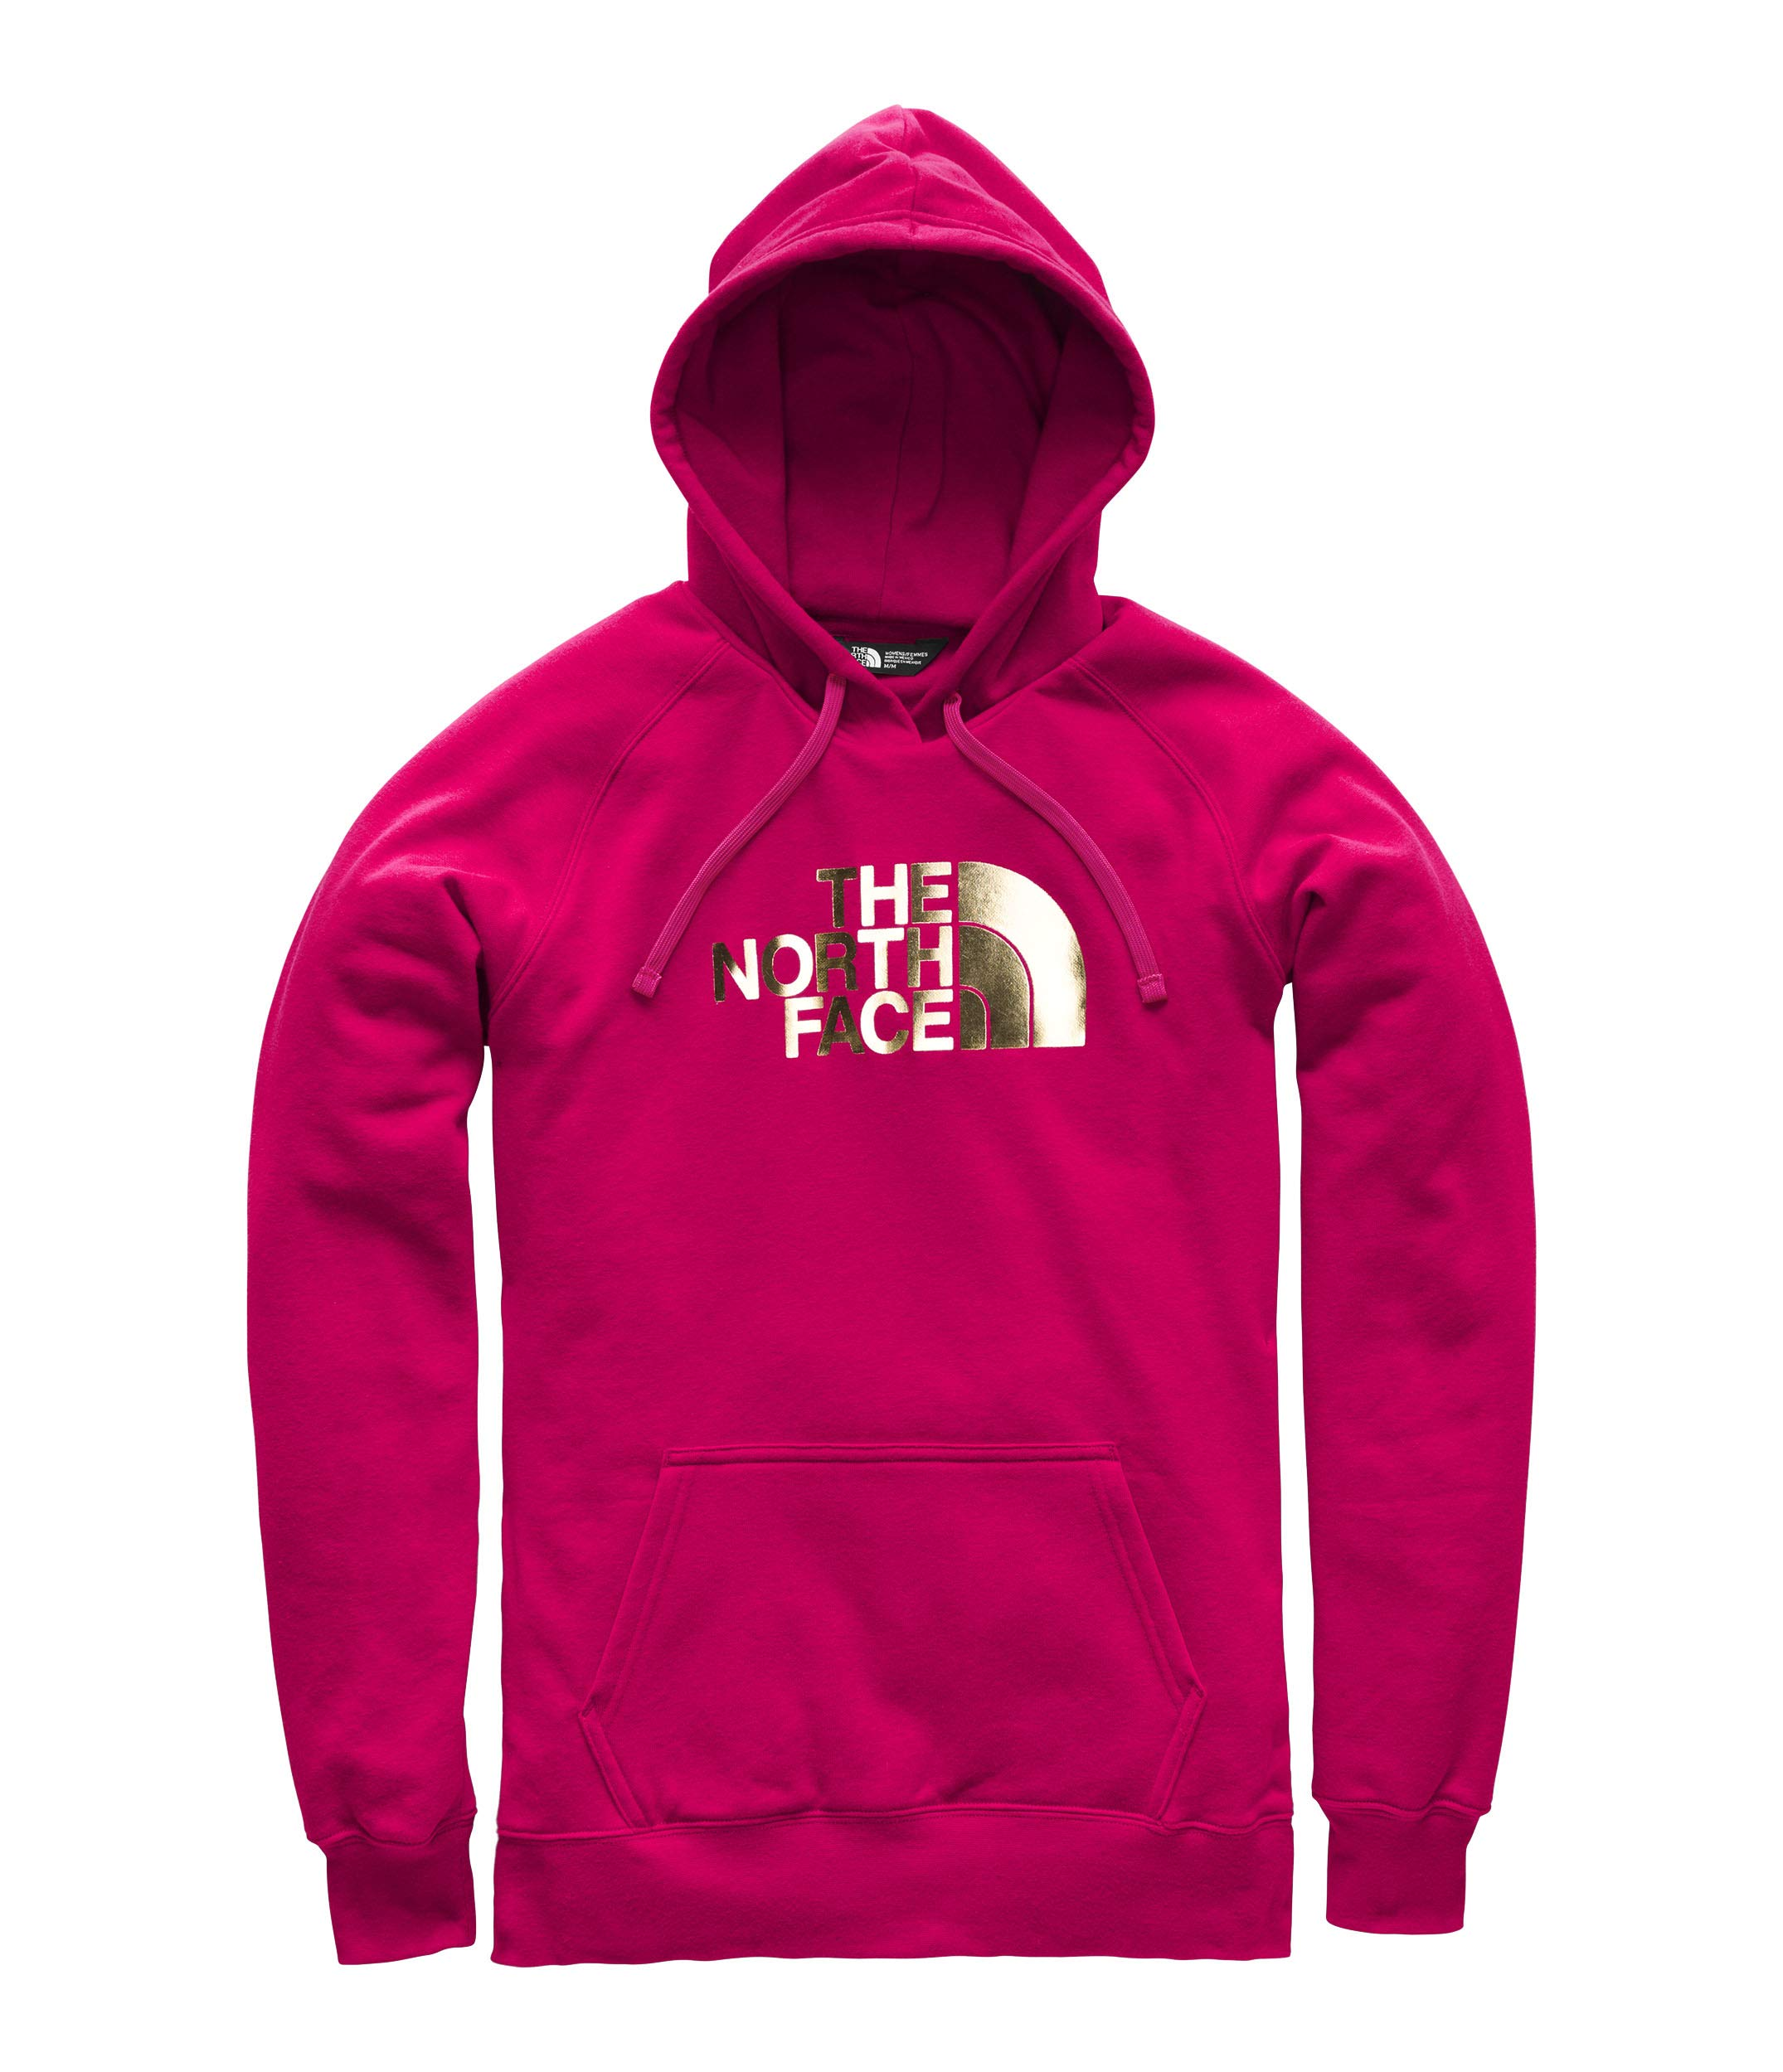 The North Face Women's Half Dome Pullover Hoodie - Cerise Pink & Gold Foil - S